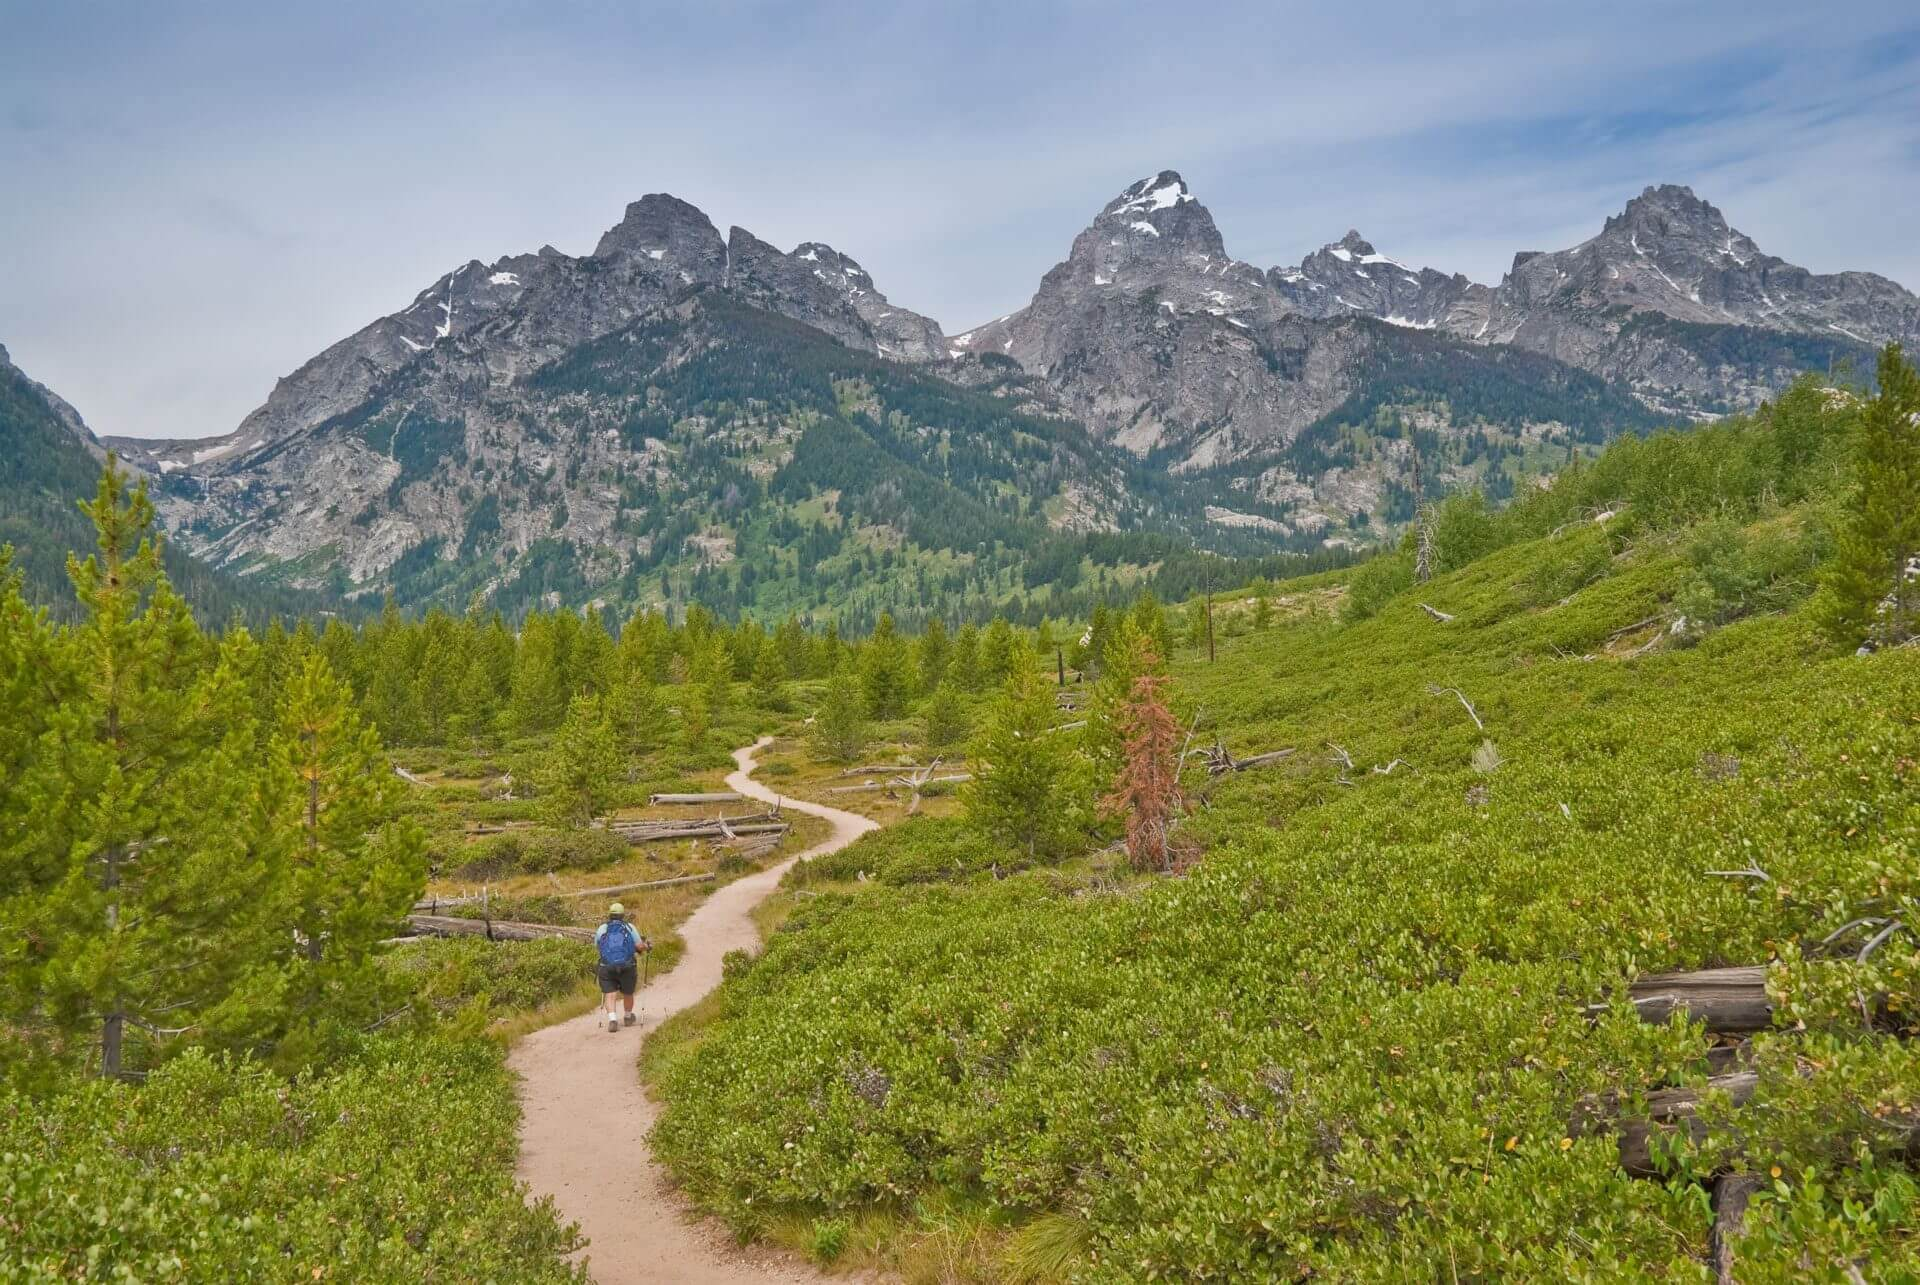 man hiking through woods and mountains on trail